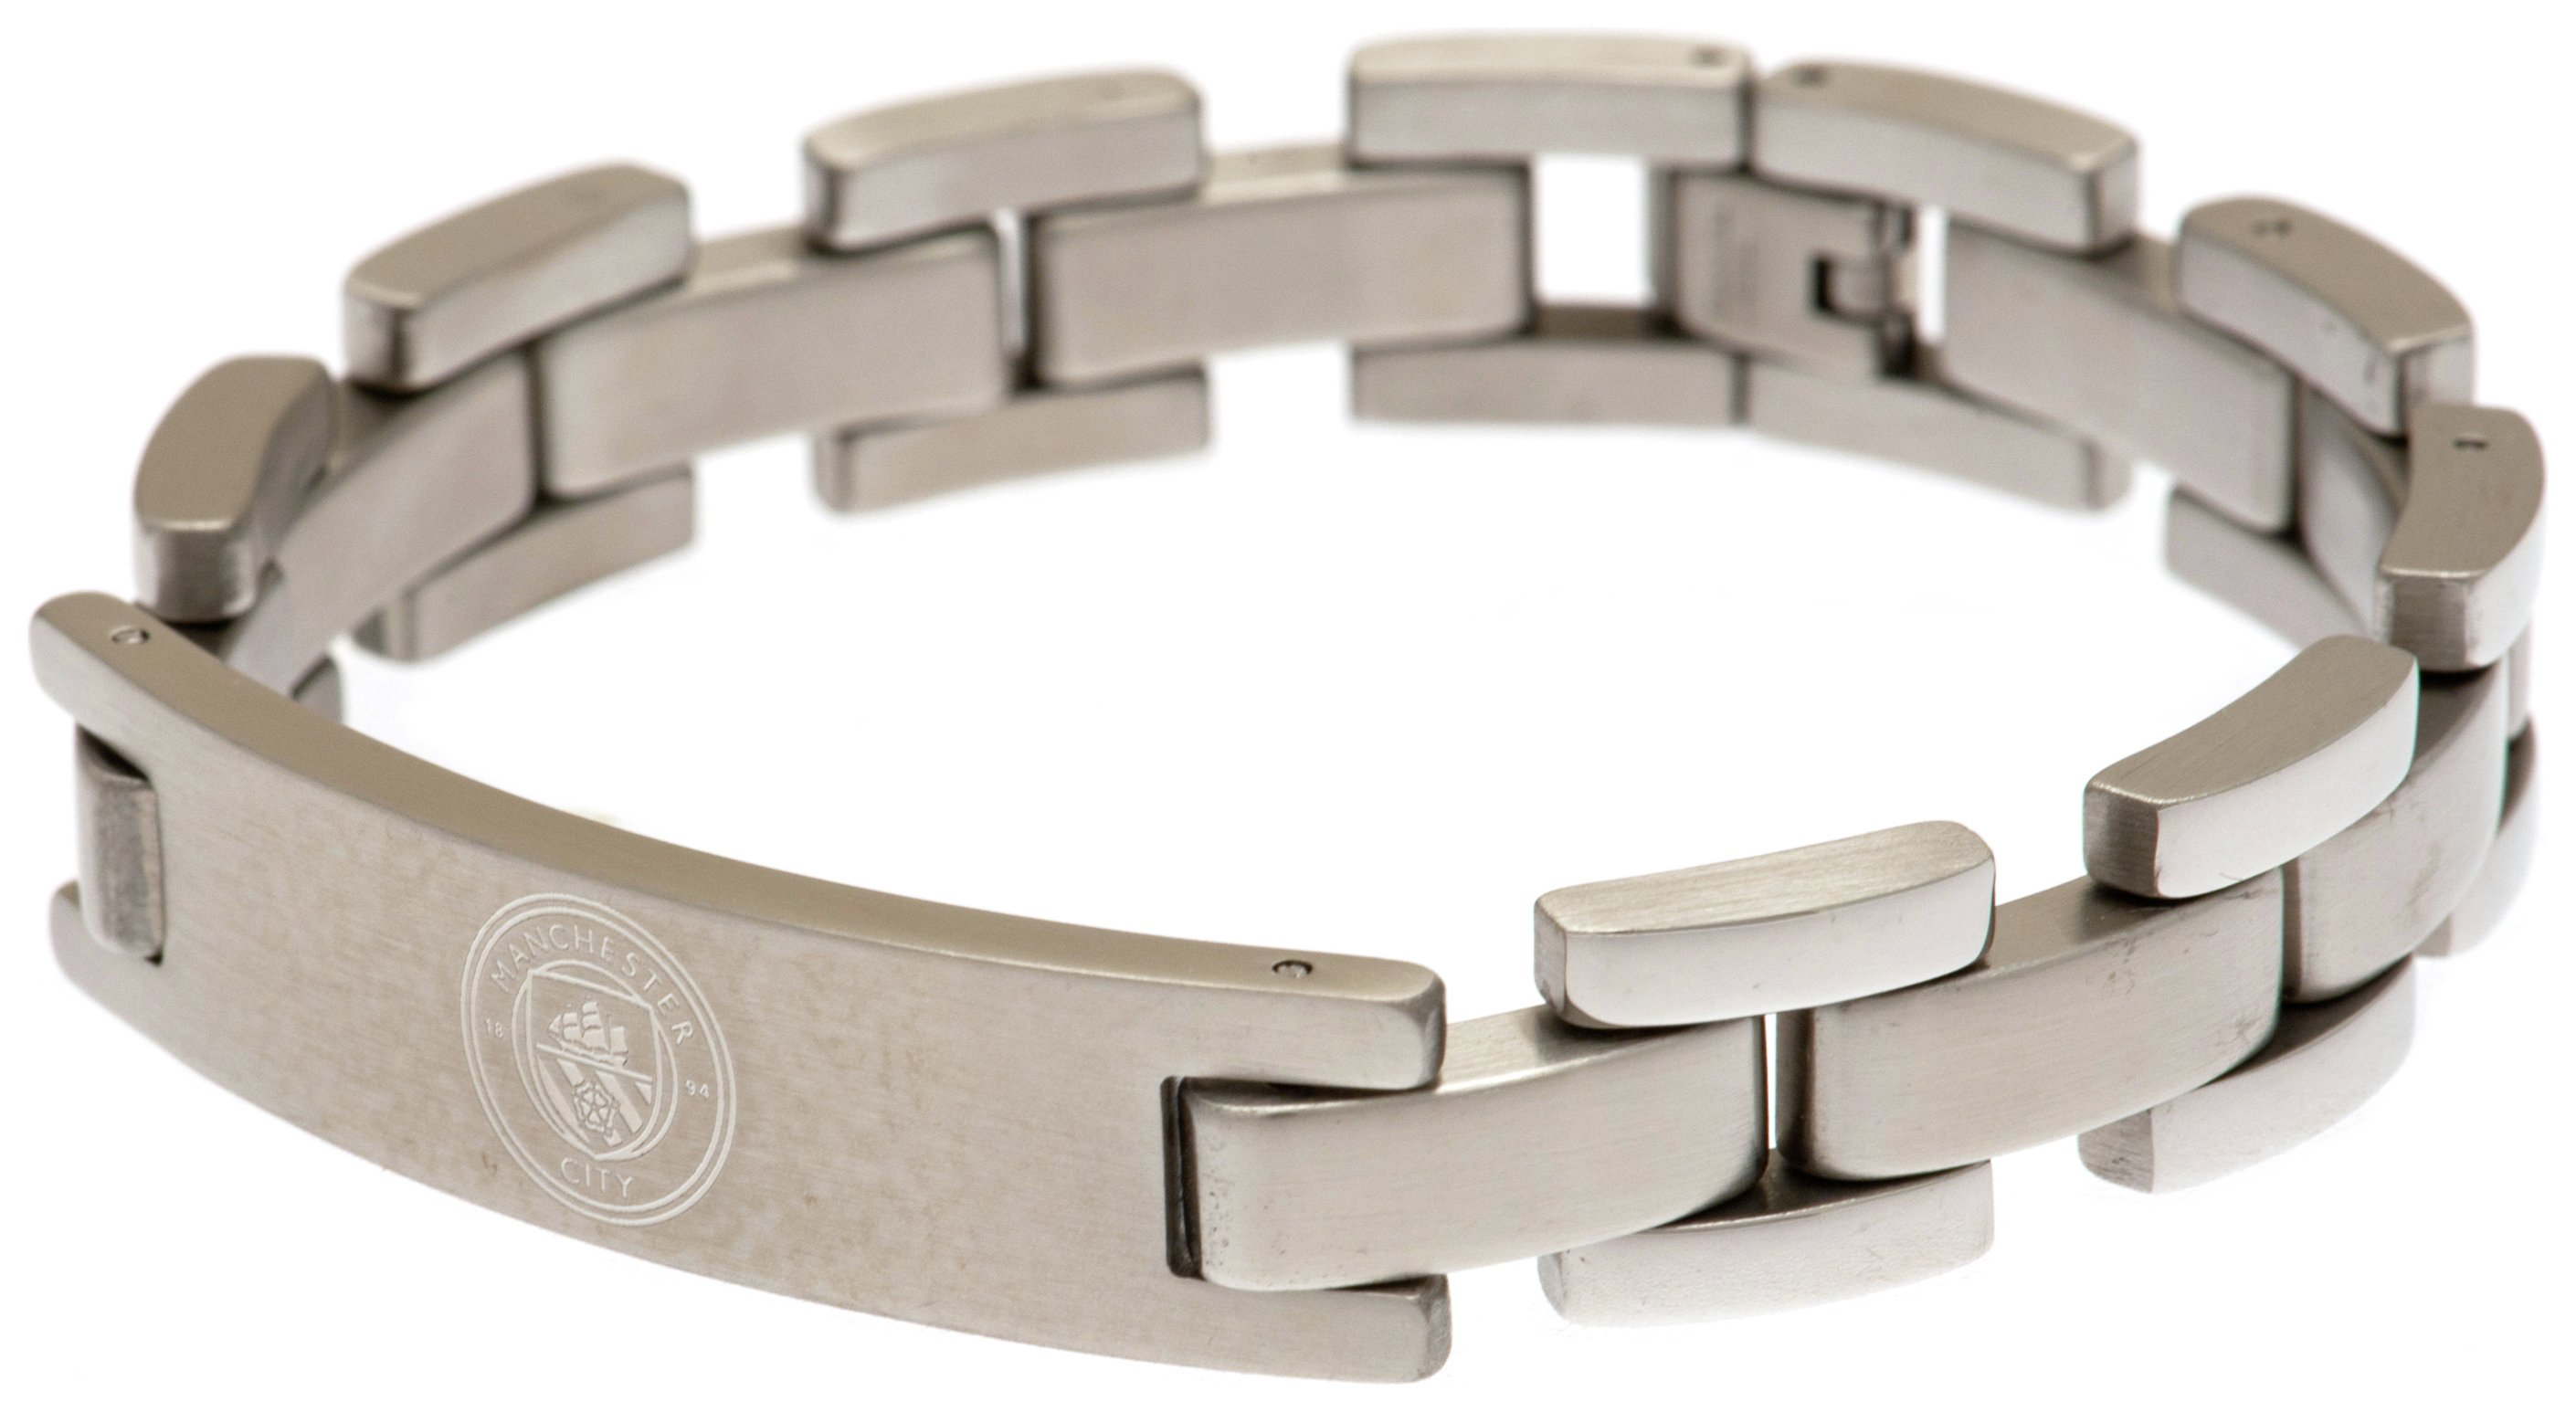 Stainless Steel Manchester City Crest Bracelet review